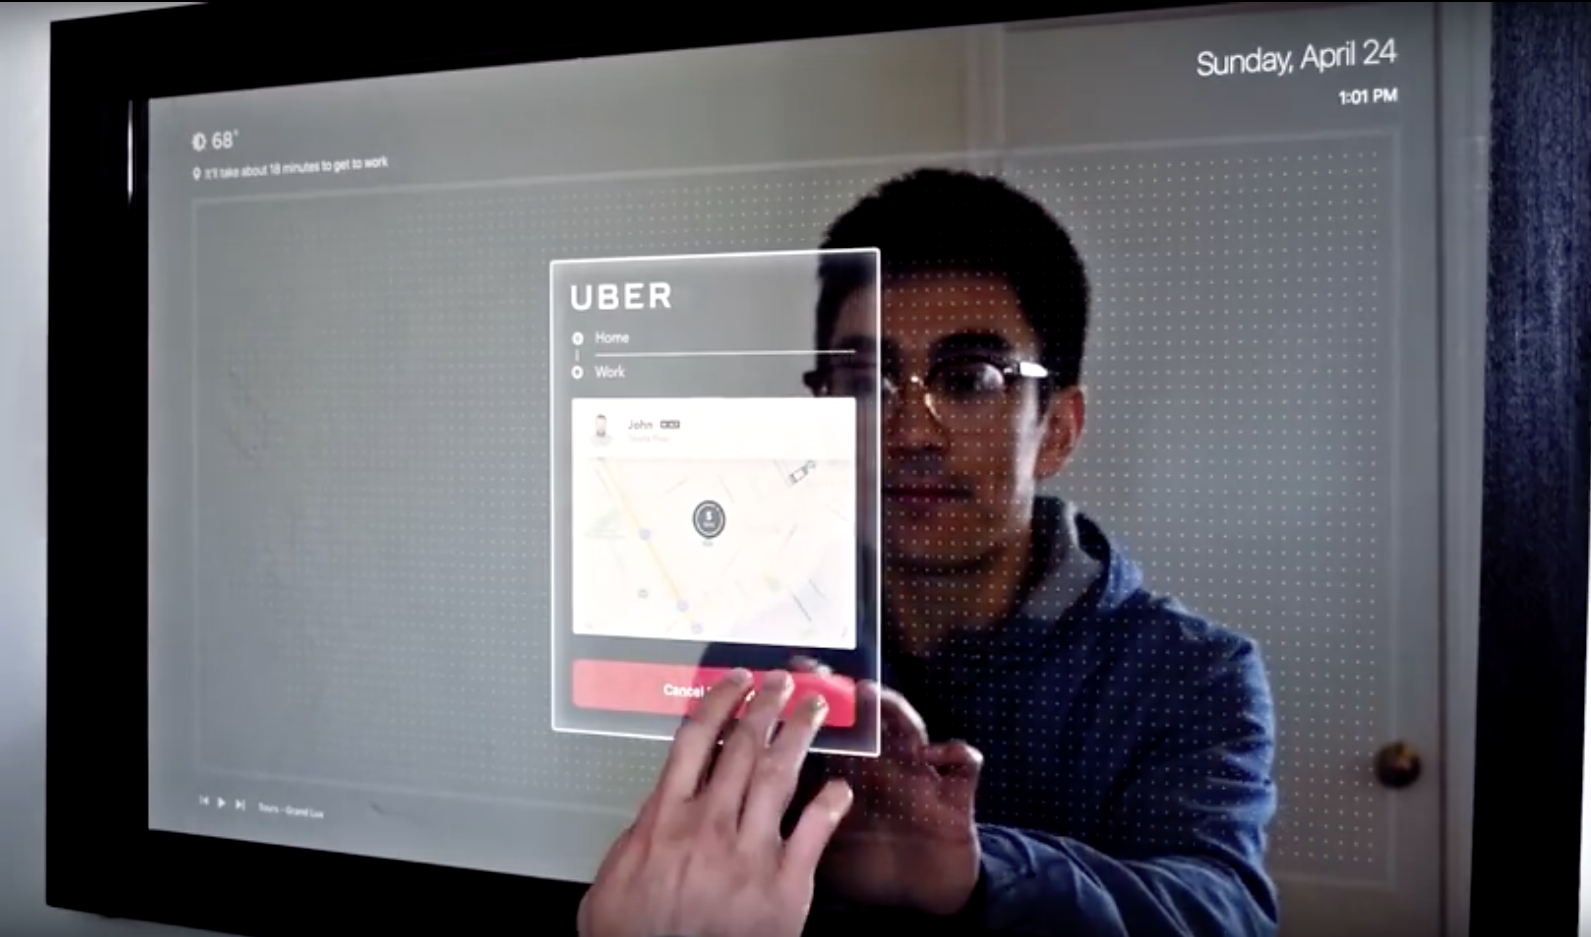 Call Uber Driver >> Touchscreen Mirror Is Like A Tablet With Your Reflection | RTM - RightThisMinute